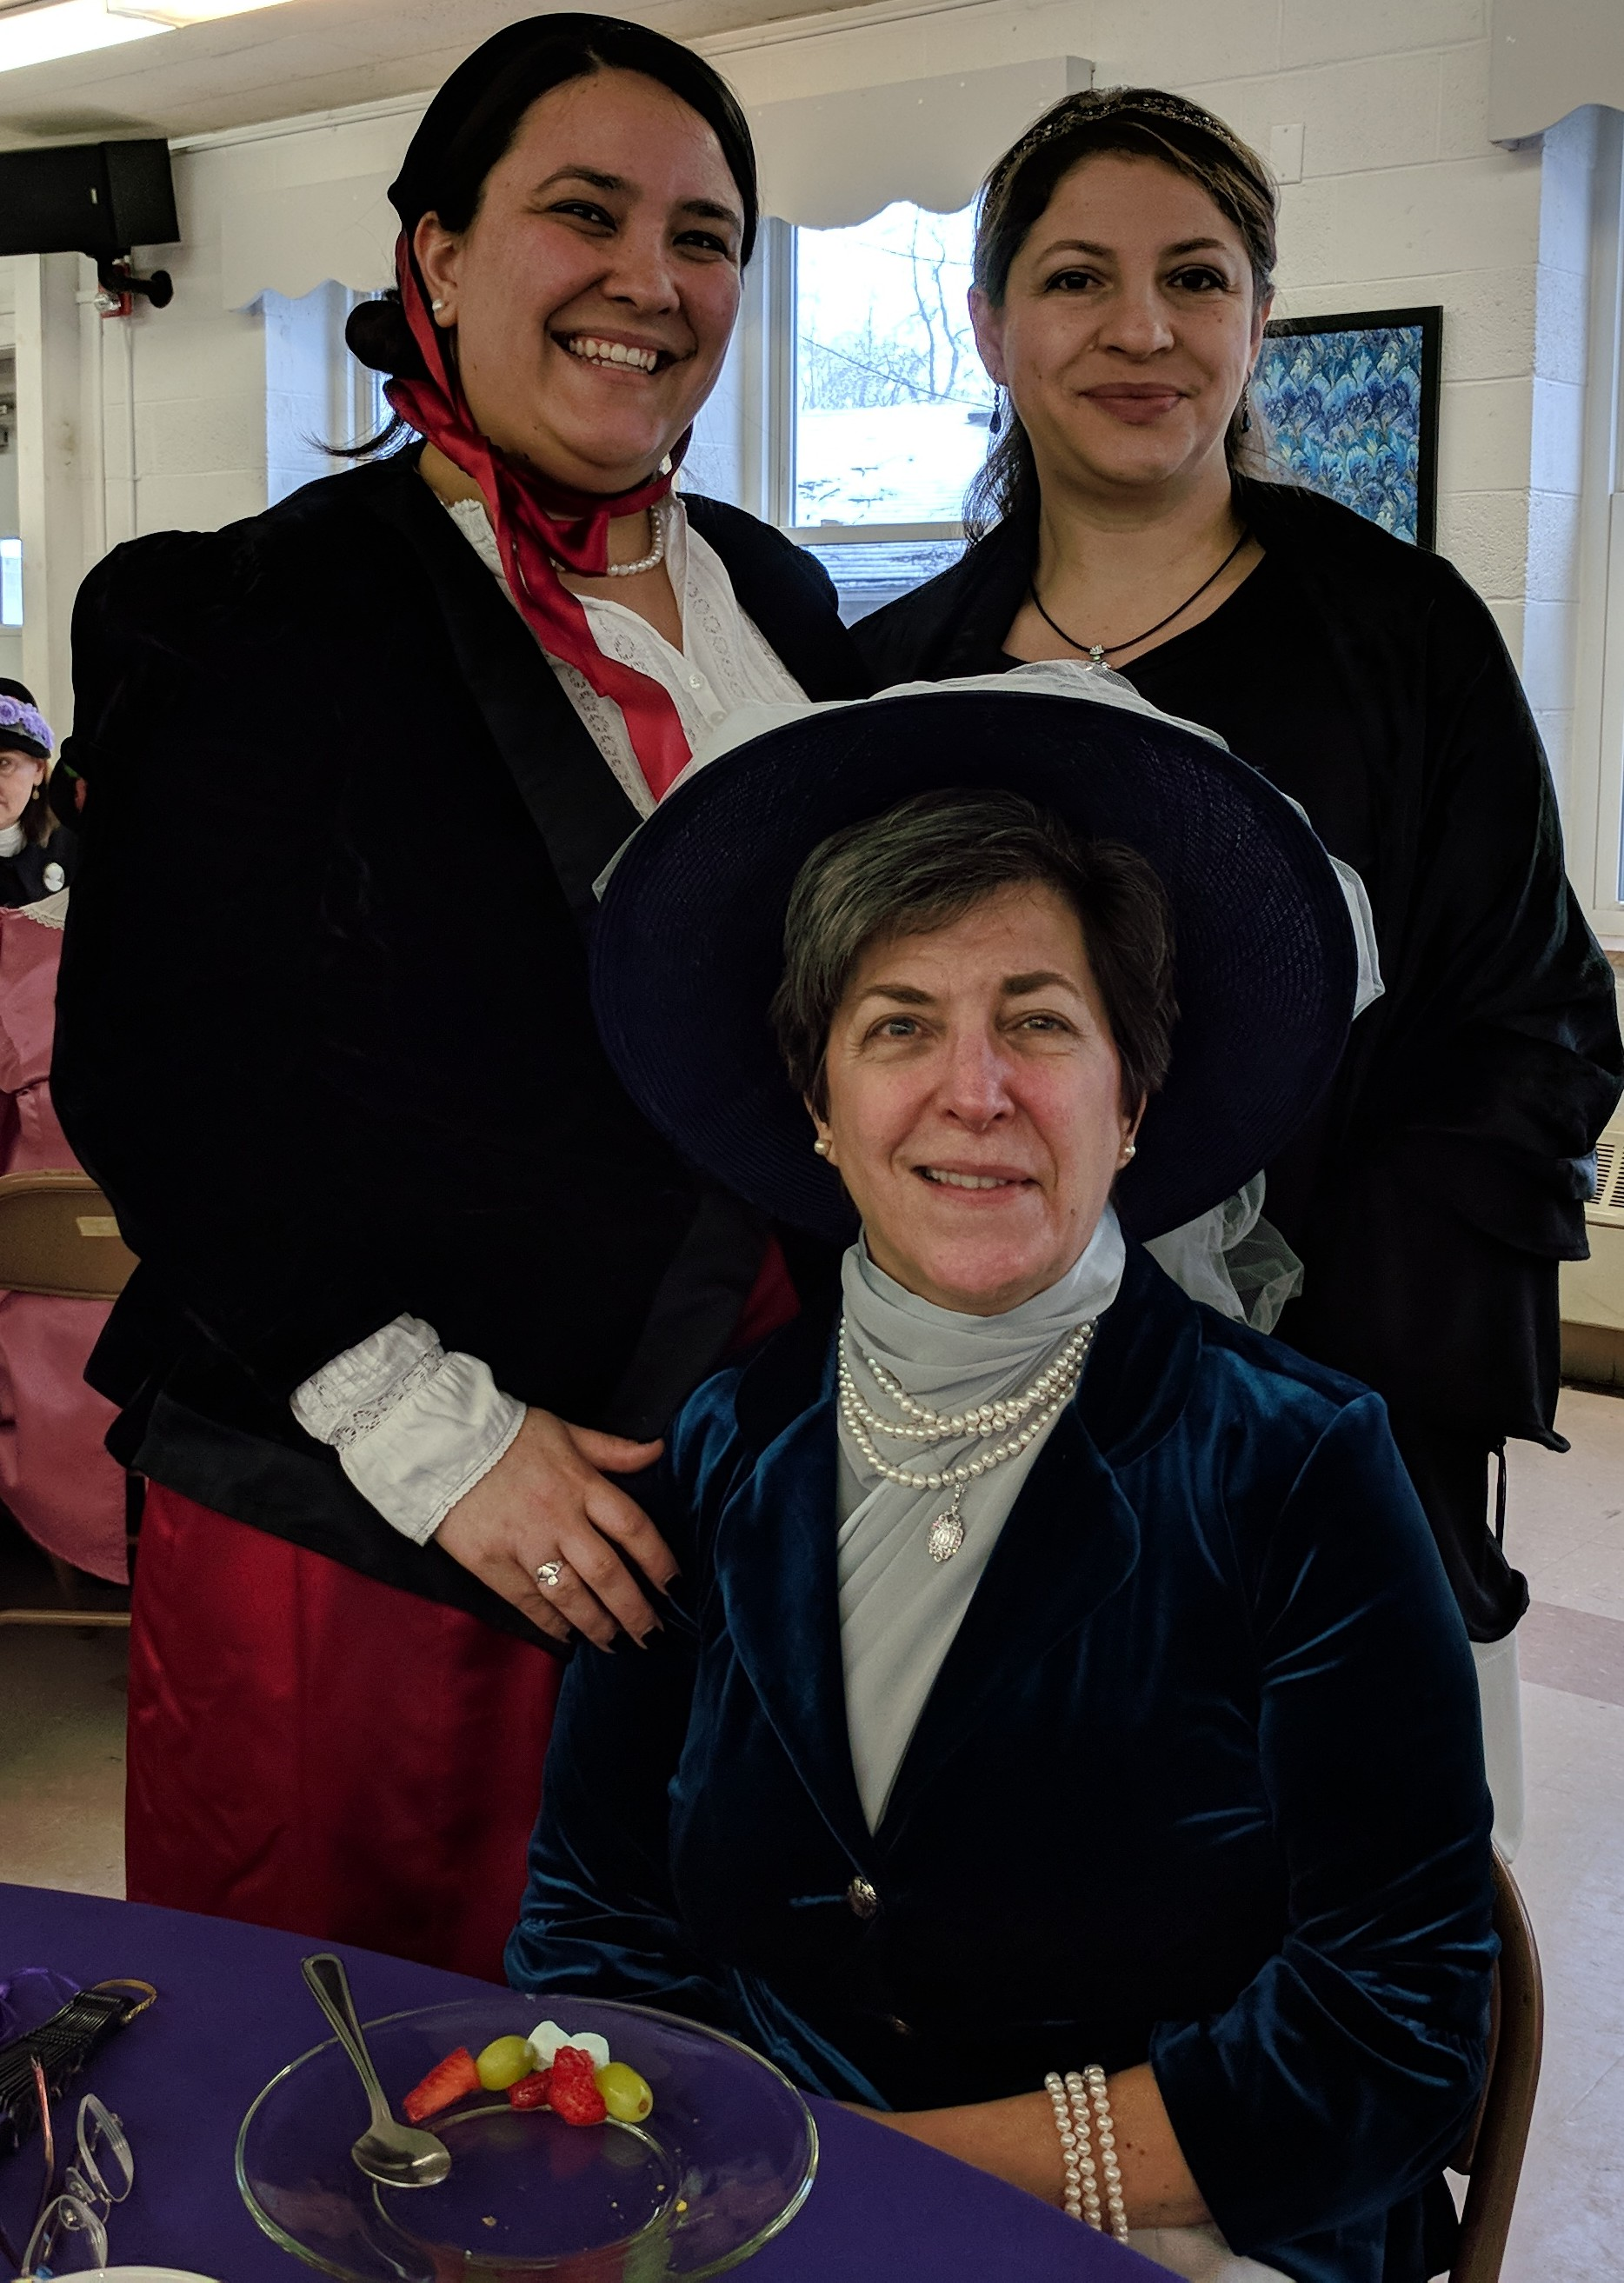 Christine (top left) came from Reynoldsburg and brought her cousin, Yasmine, from Dayton, and her mother, Catherine, from Newport, Kentucky just to participate in the annual Victorian Sweetheart Tea! Catherine won the prize for traveling the farthest.